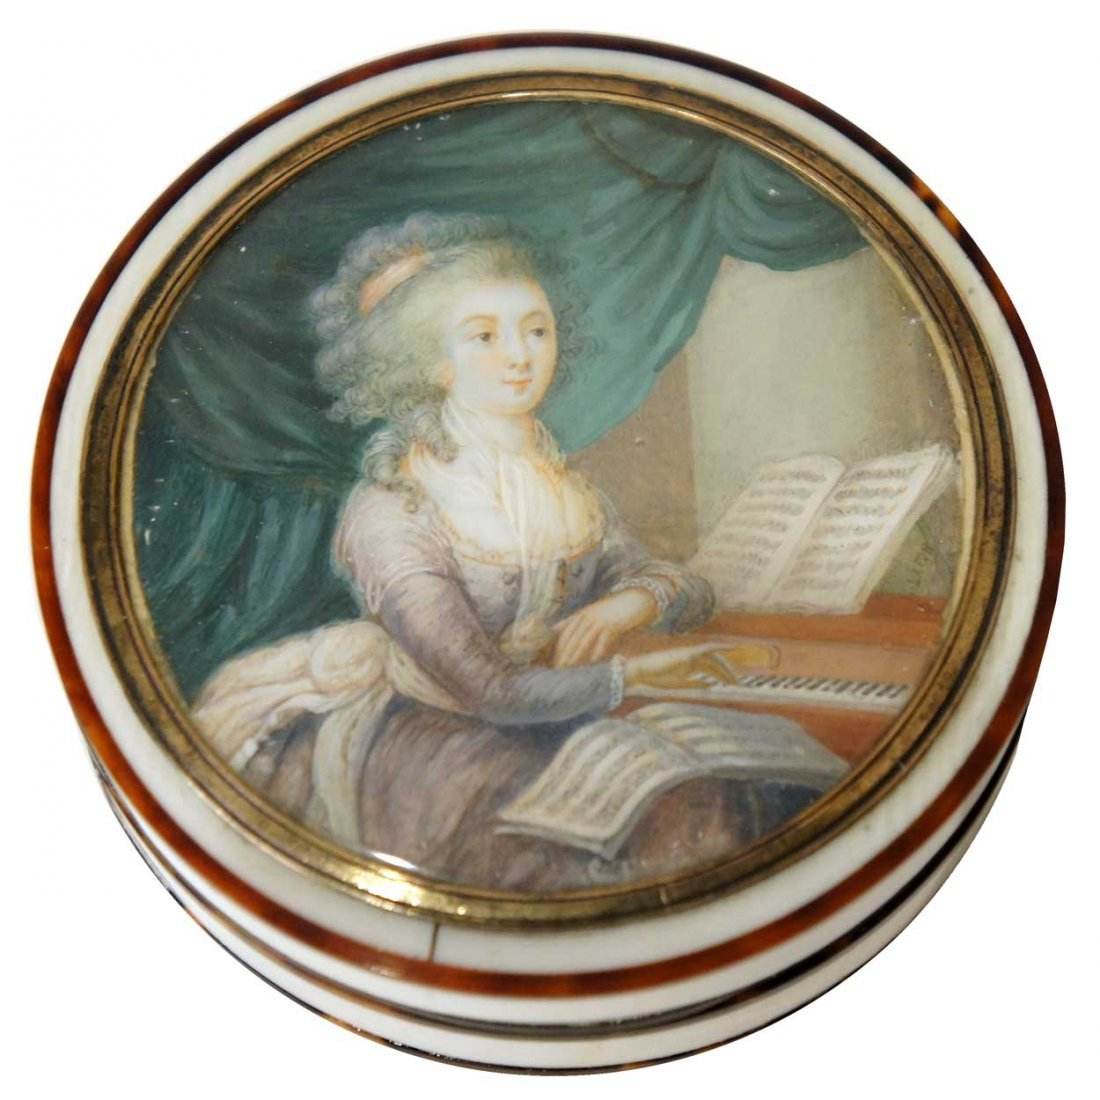 12: A French Louis XV Tortoiseshell and Ivory Portrait